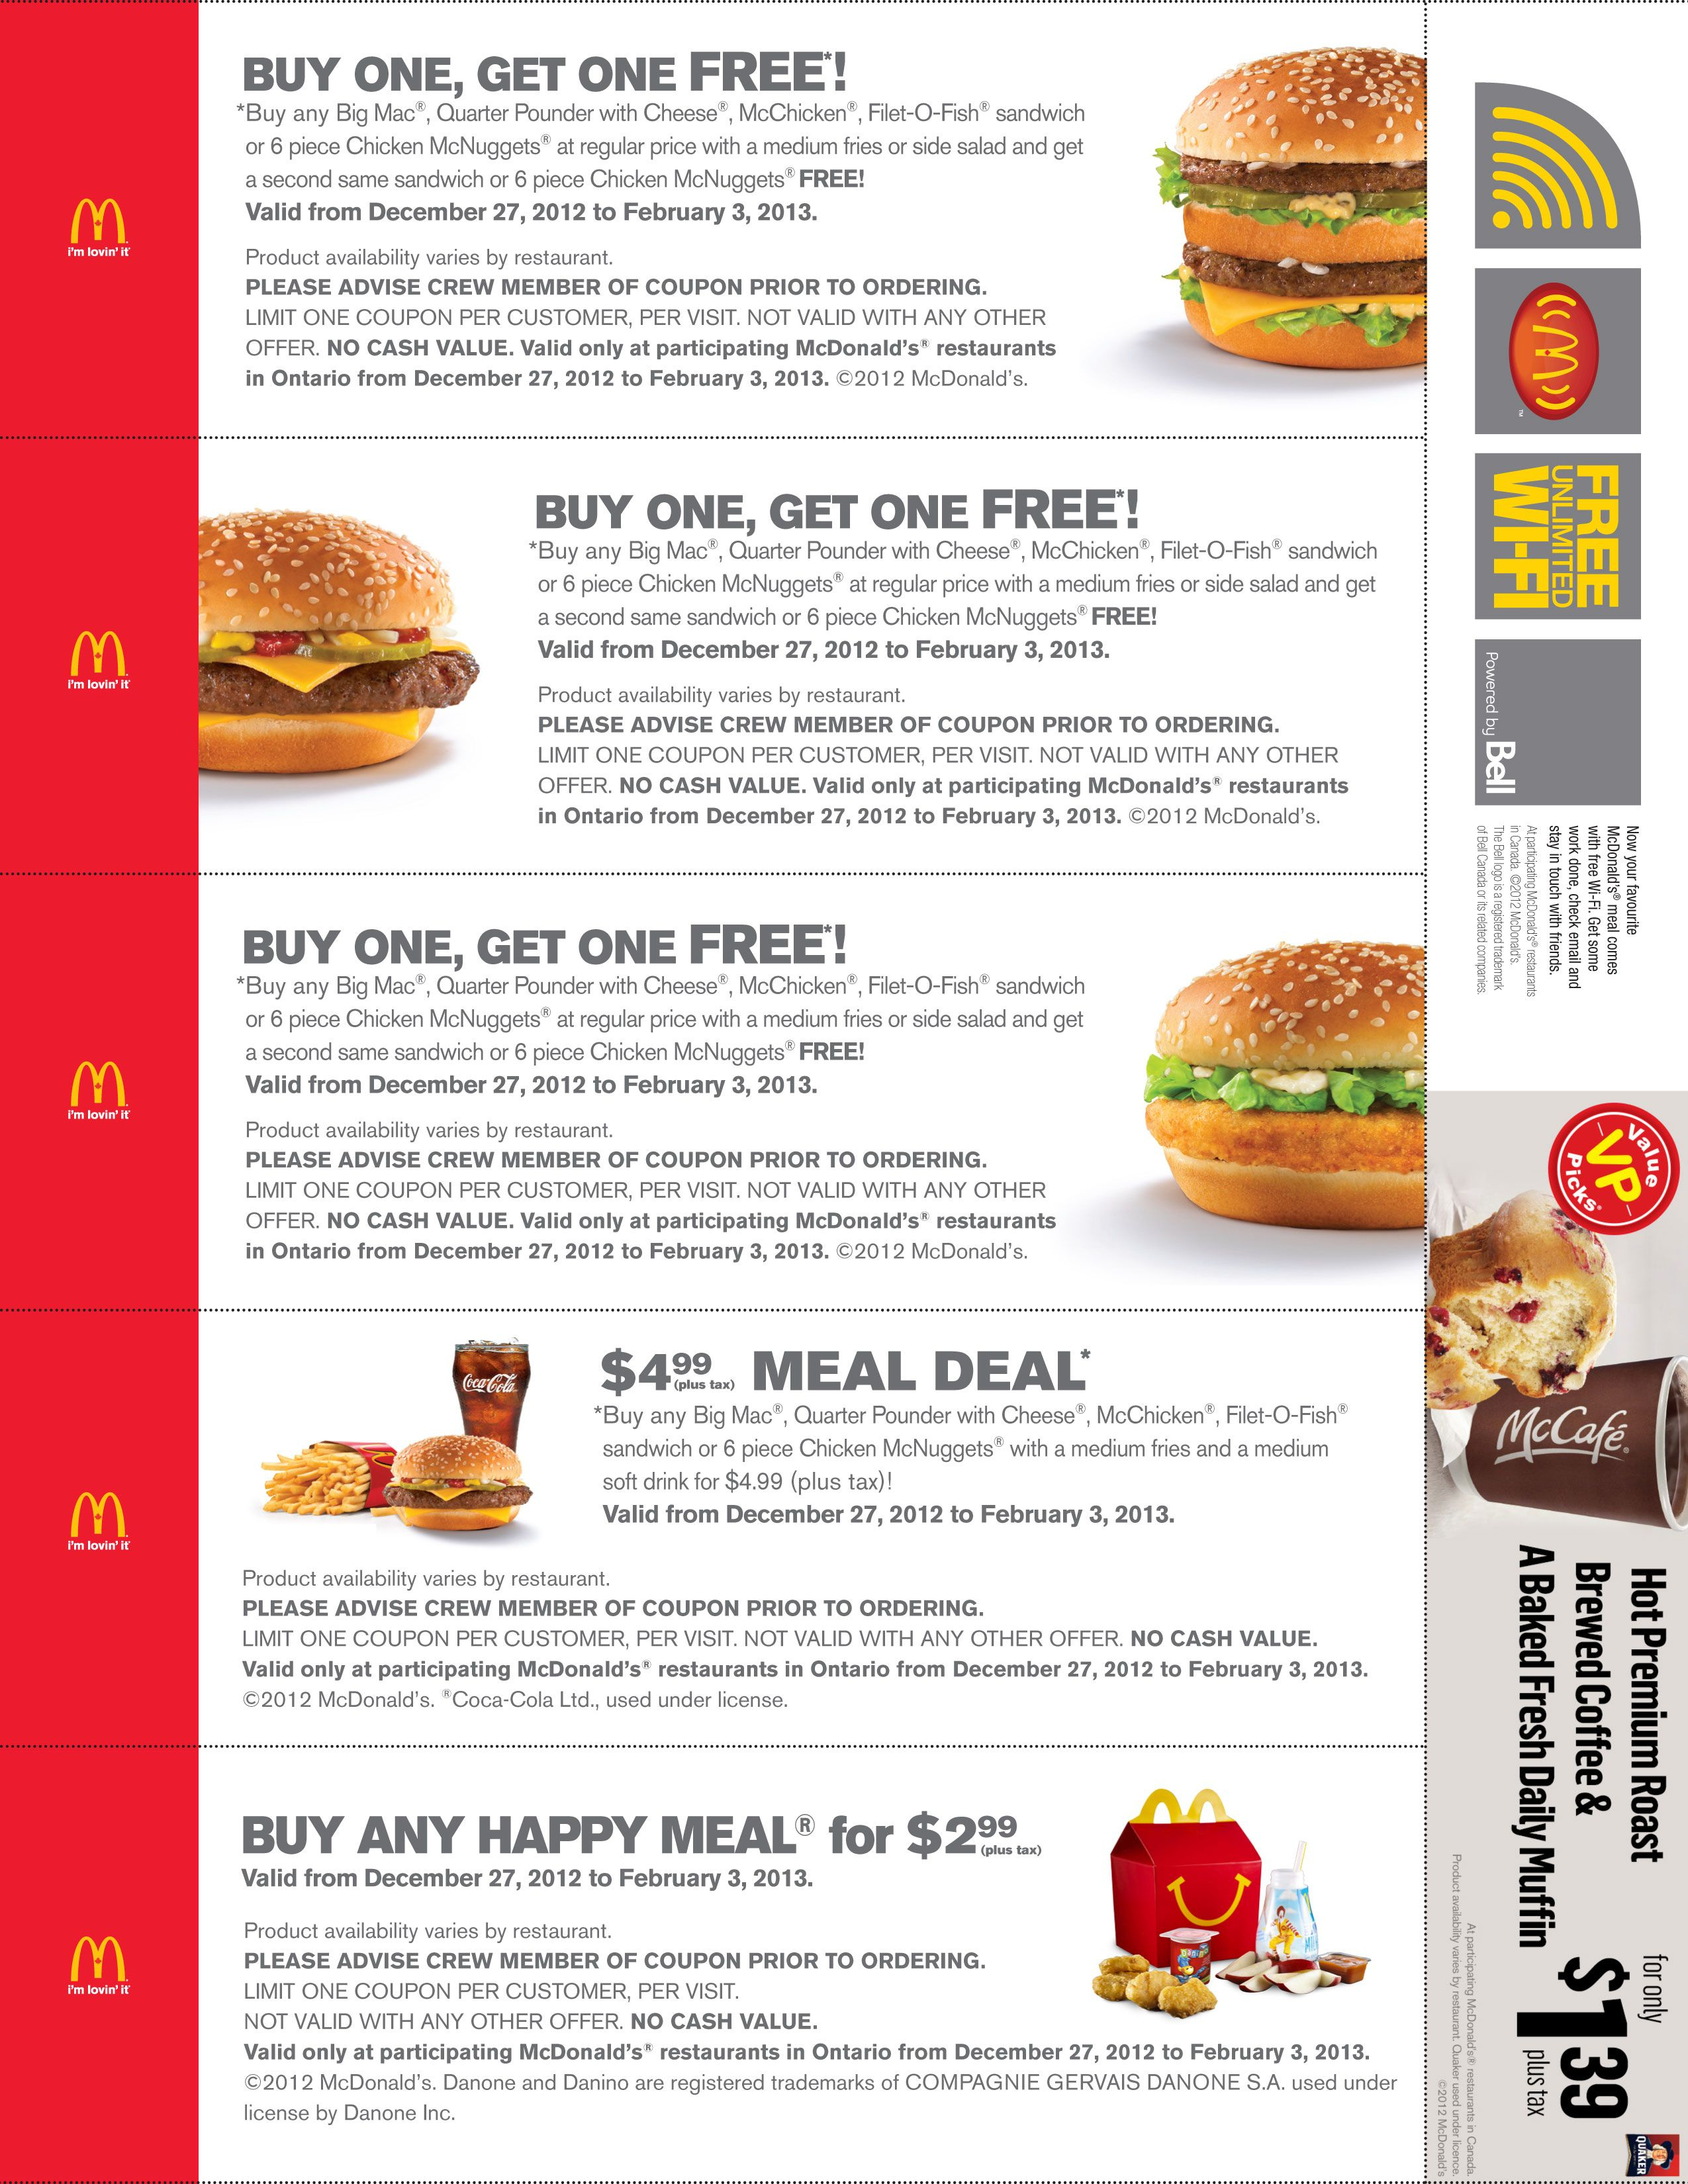 Printable Mcdonald Coupons 2014 | Stuff To Buy | Pinterest - Free Printable Mcdonalds Coupons Online